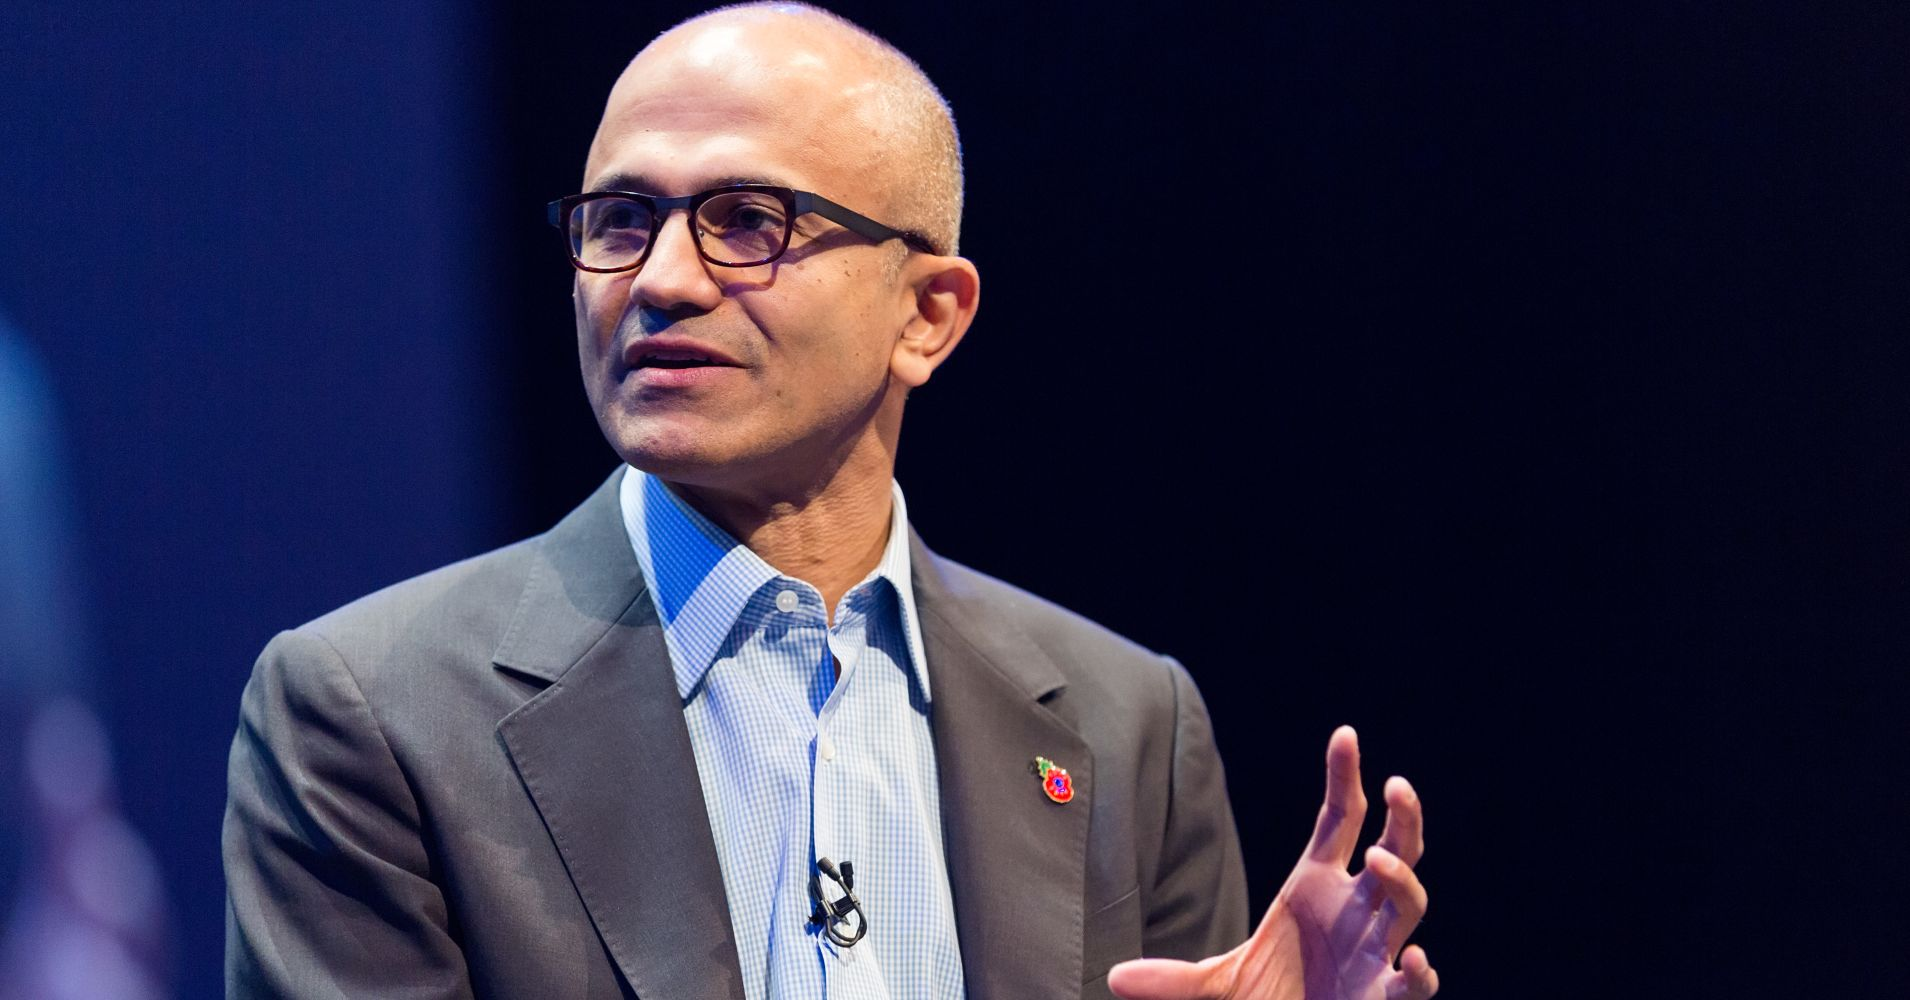 Microsoft CEO Satya Nadella: Tech companies need to defend privacy as a human right